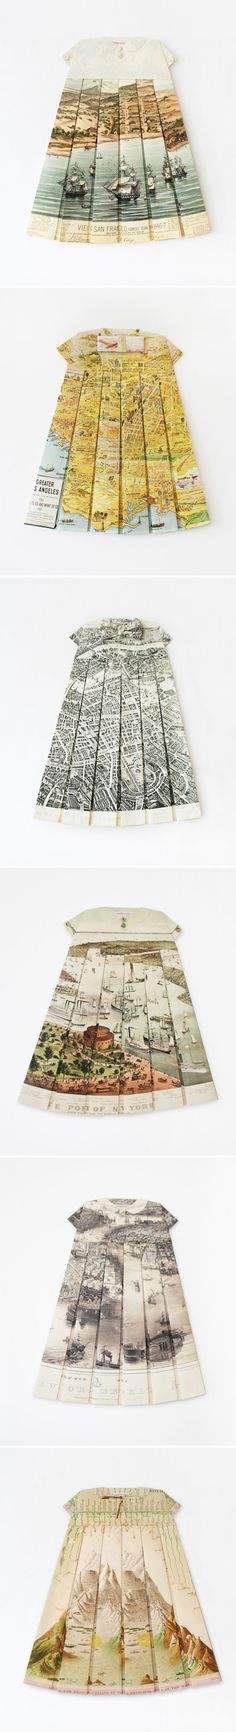 Dresses made out of maps by Elisabeth Lecourt